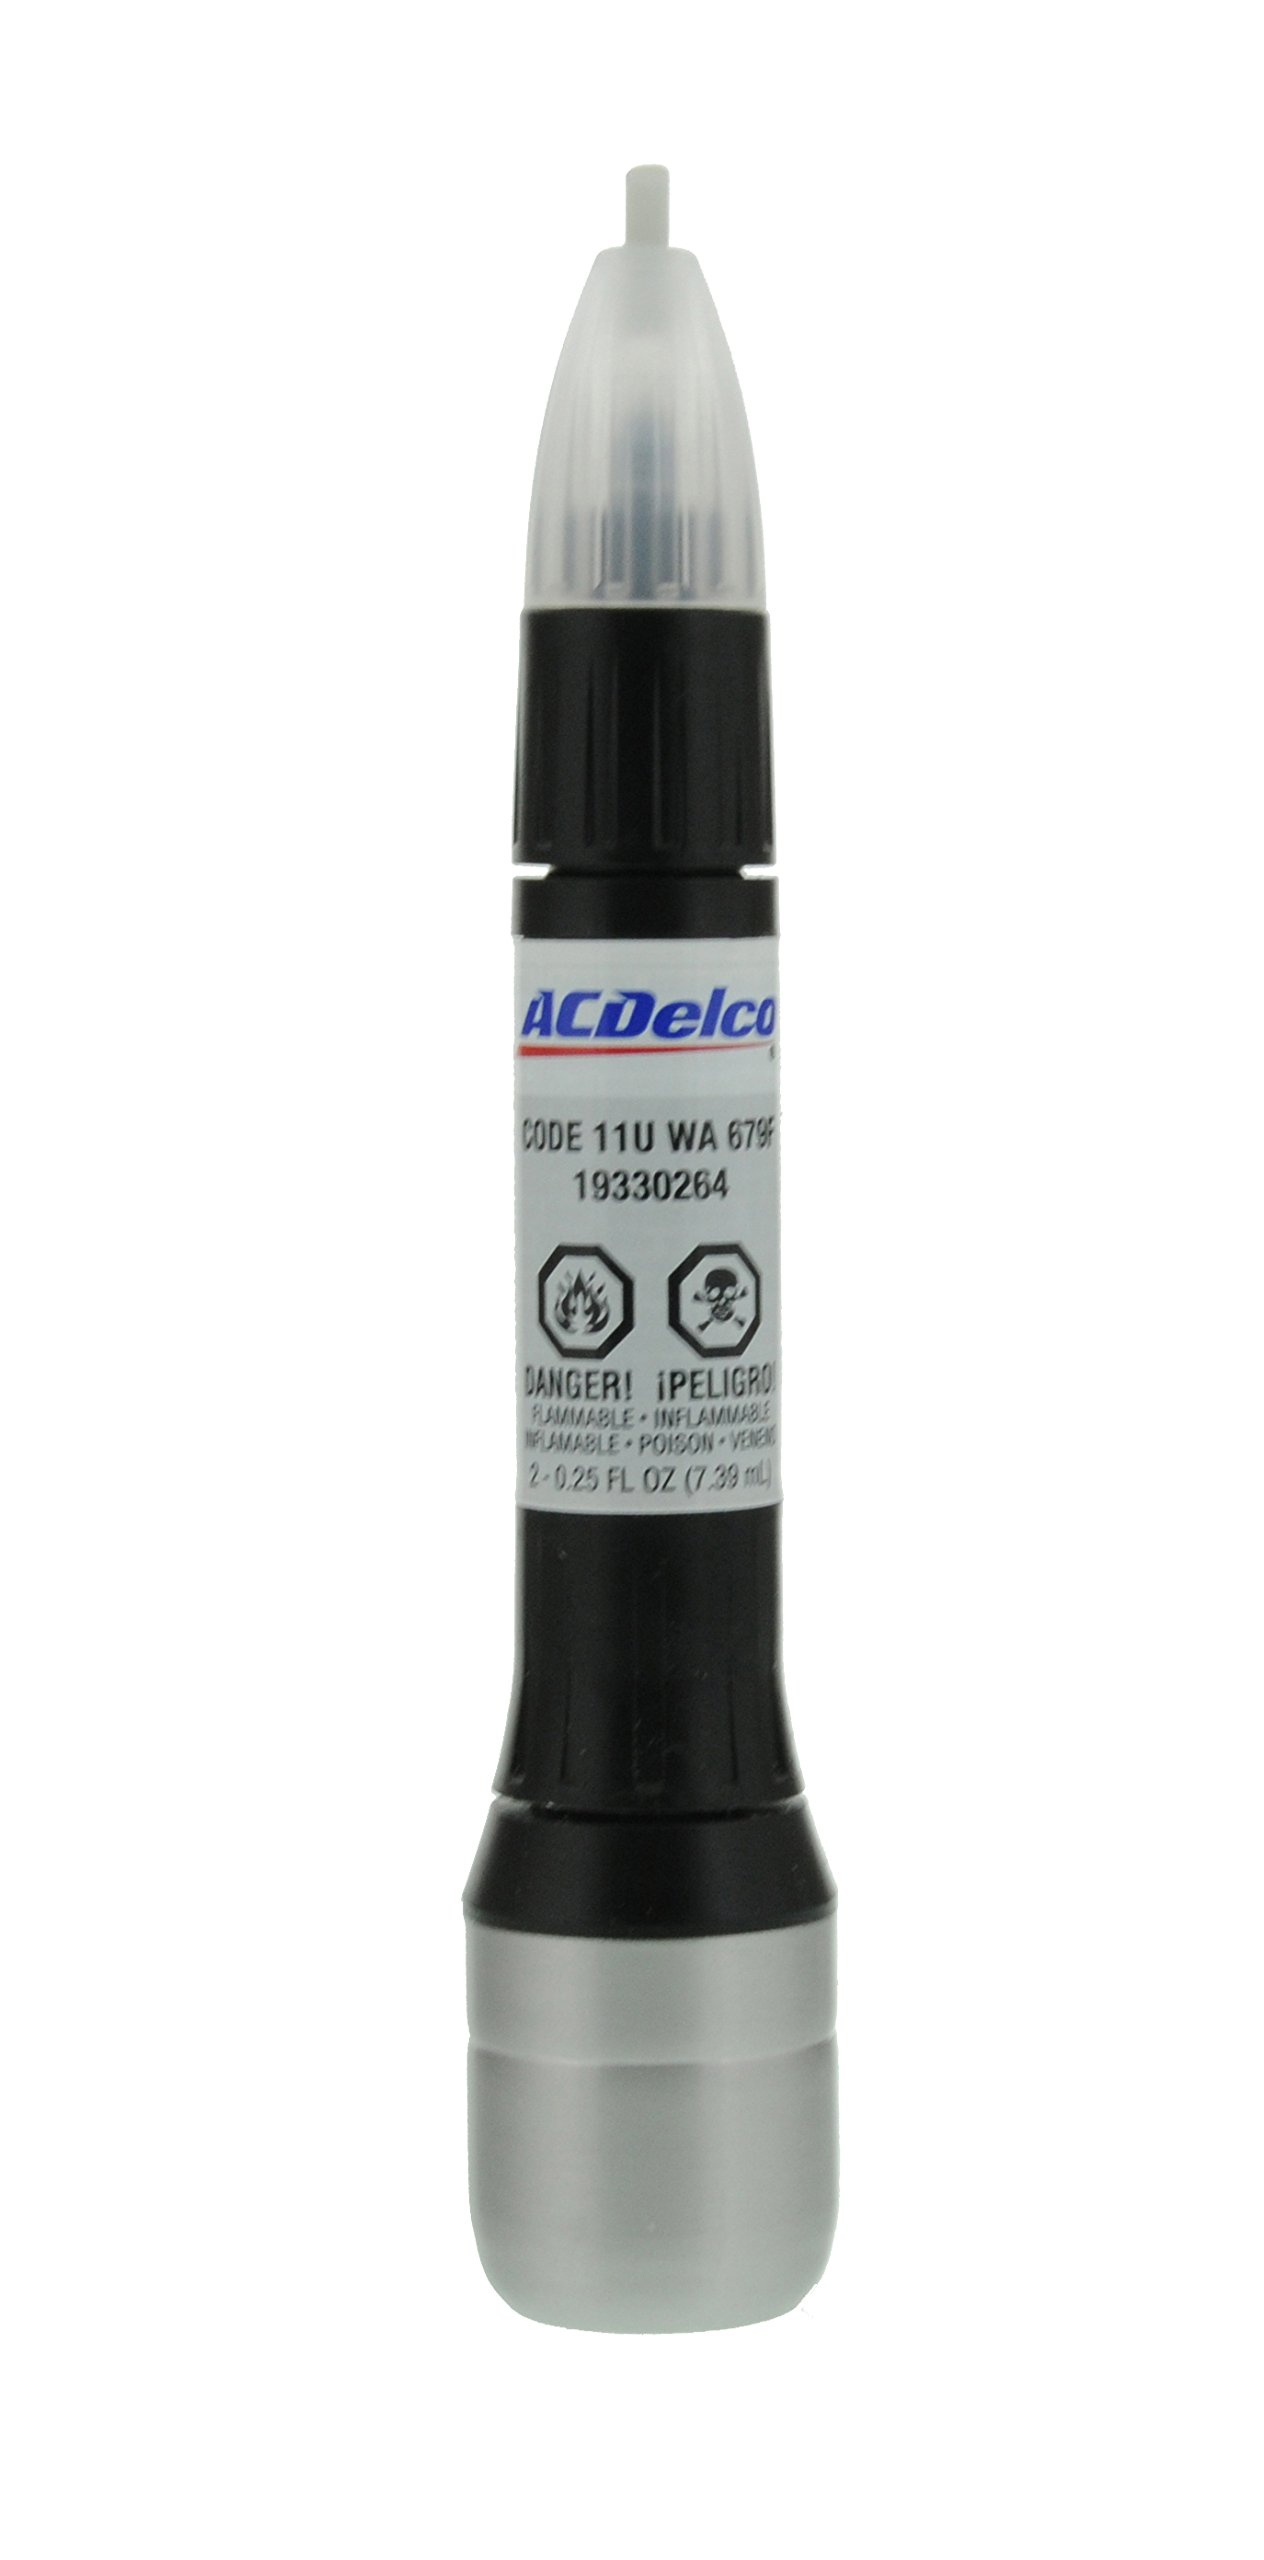 ACDelco 19330264 Heron White (WA679F) Four-In-One Touch-Up Paint - .5 oz Pen